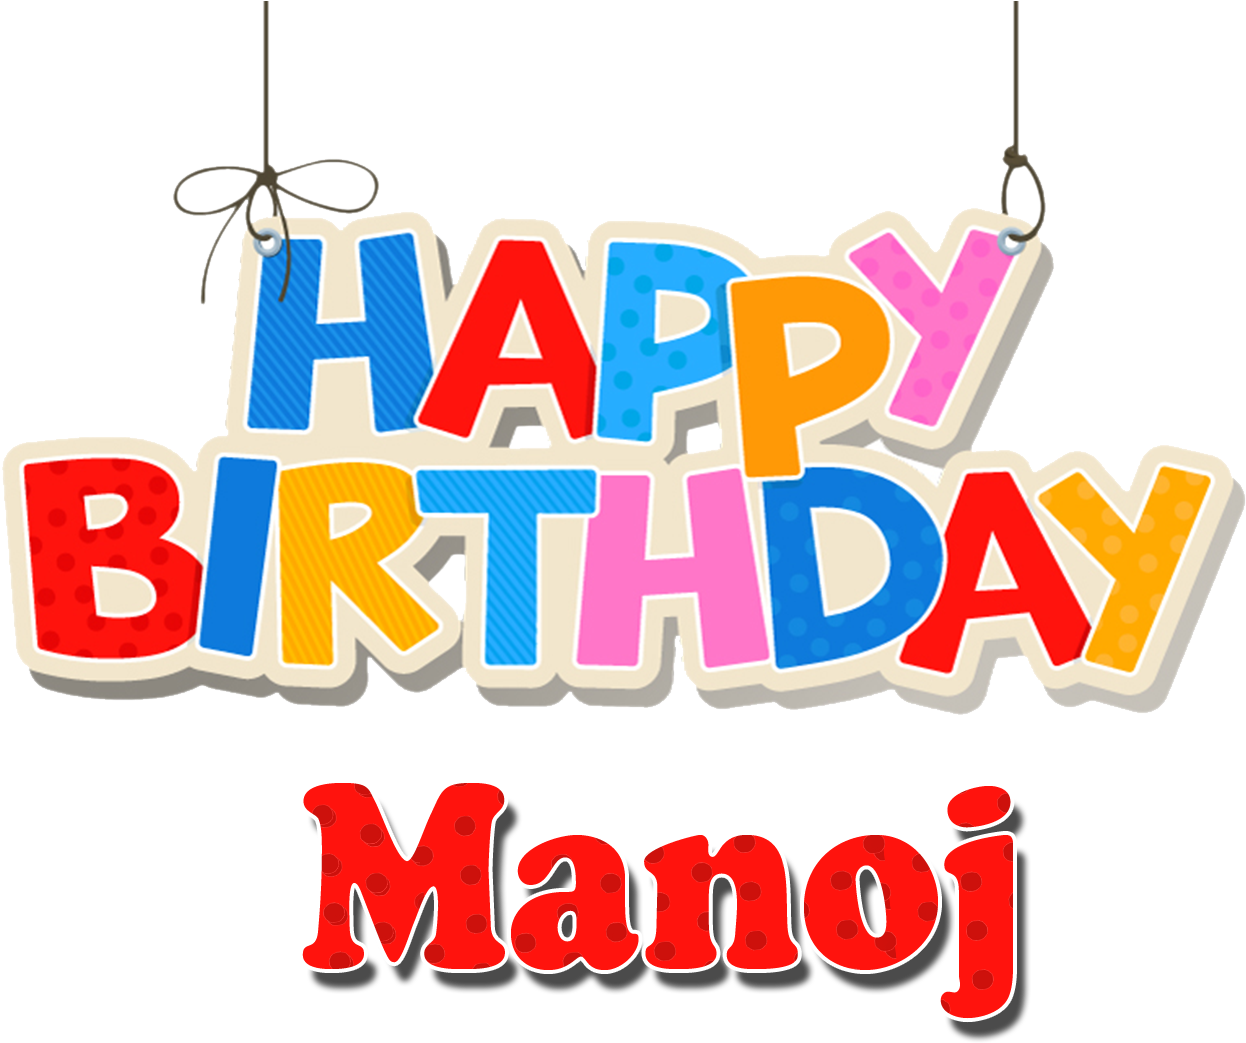 Transparent name banner clipart - Happy Birthday Name Png - Happy Birthday Manoj Image Hd